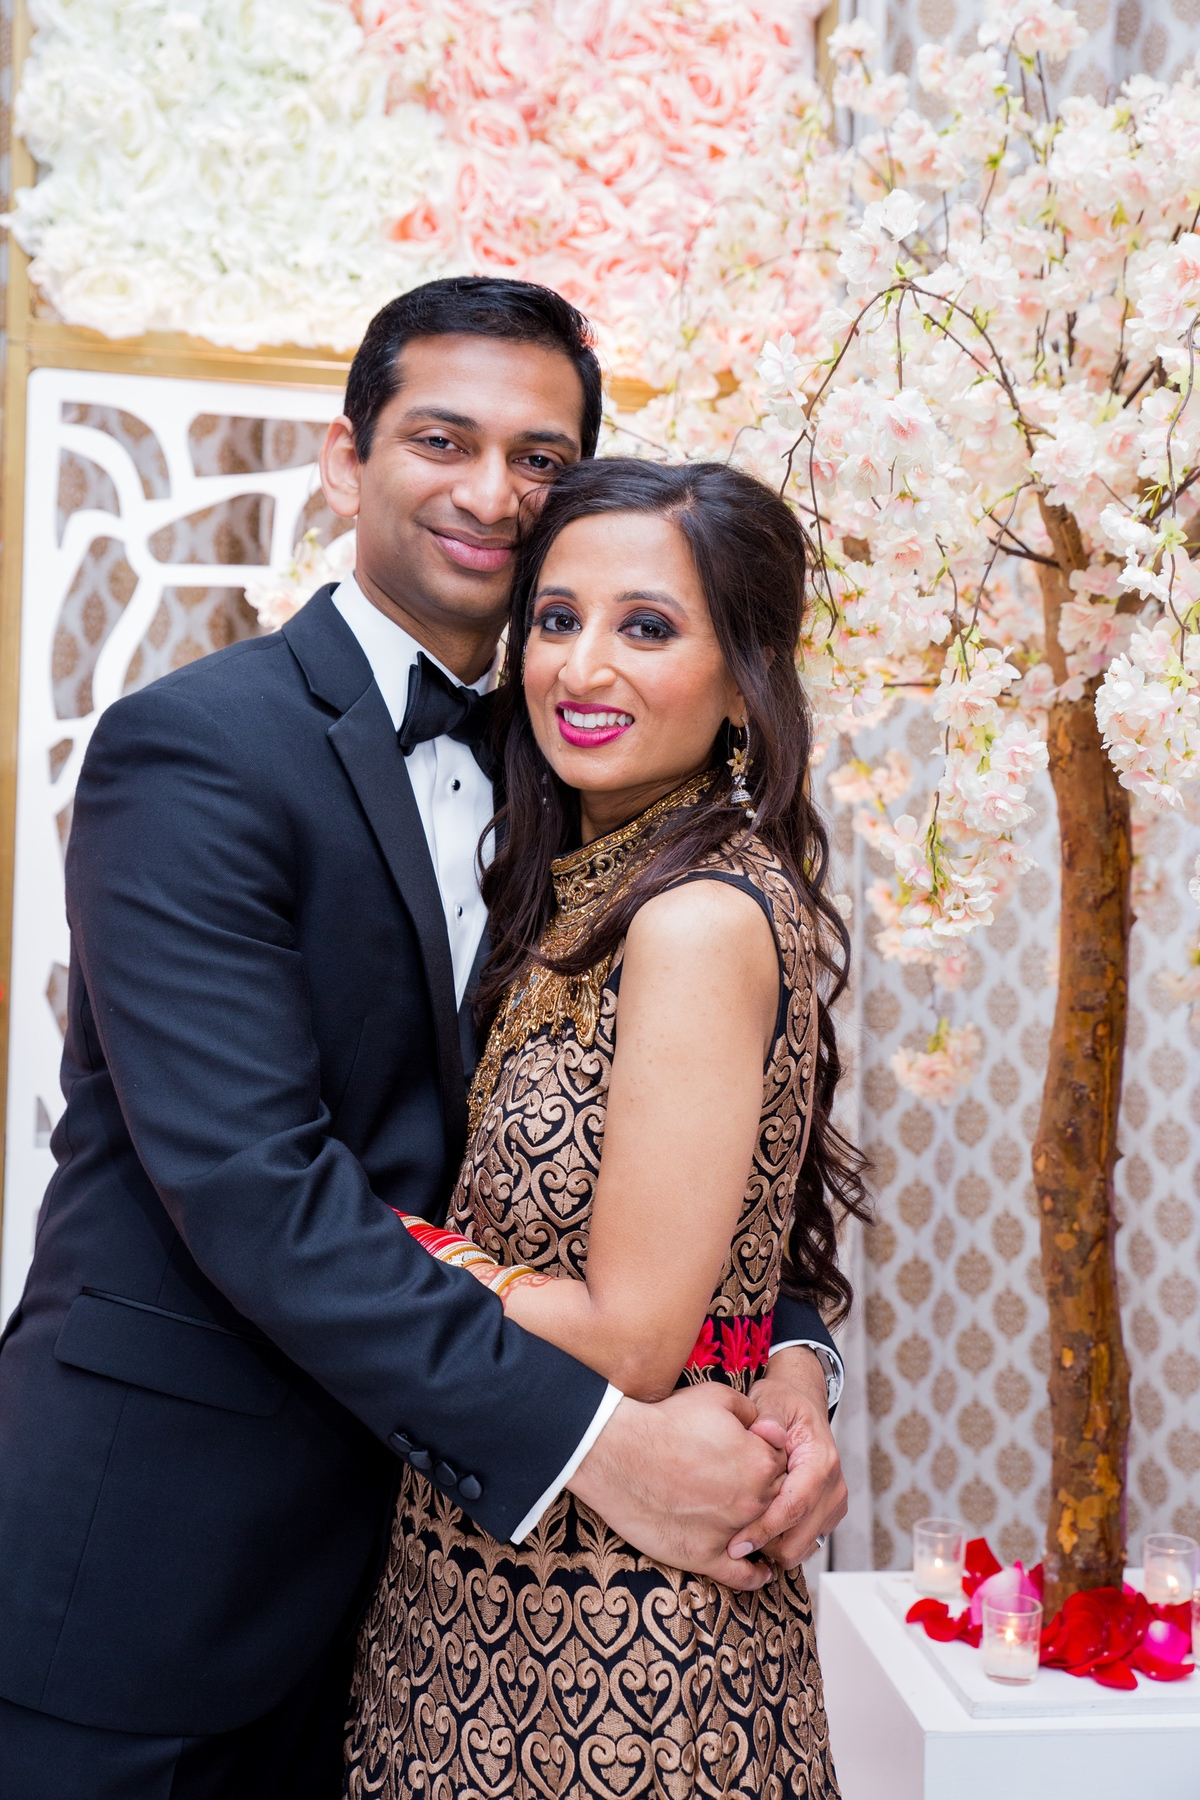 Le Cape Weddings - South Asian Wedding - Chicago Wedding Photographer P&V-84-2.jpg